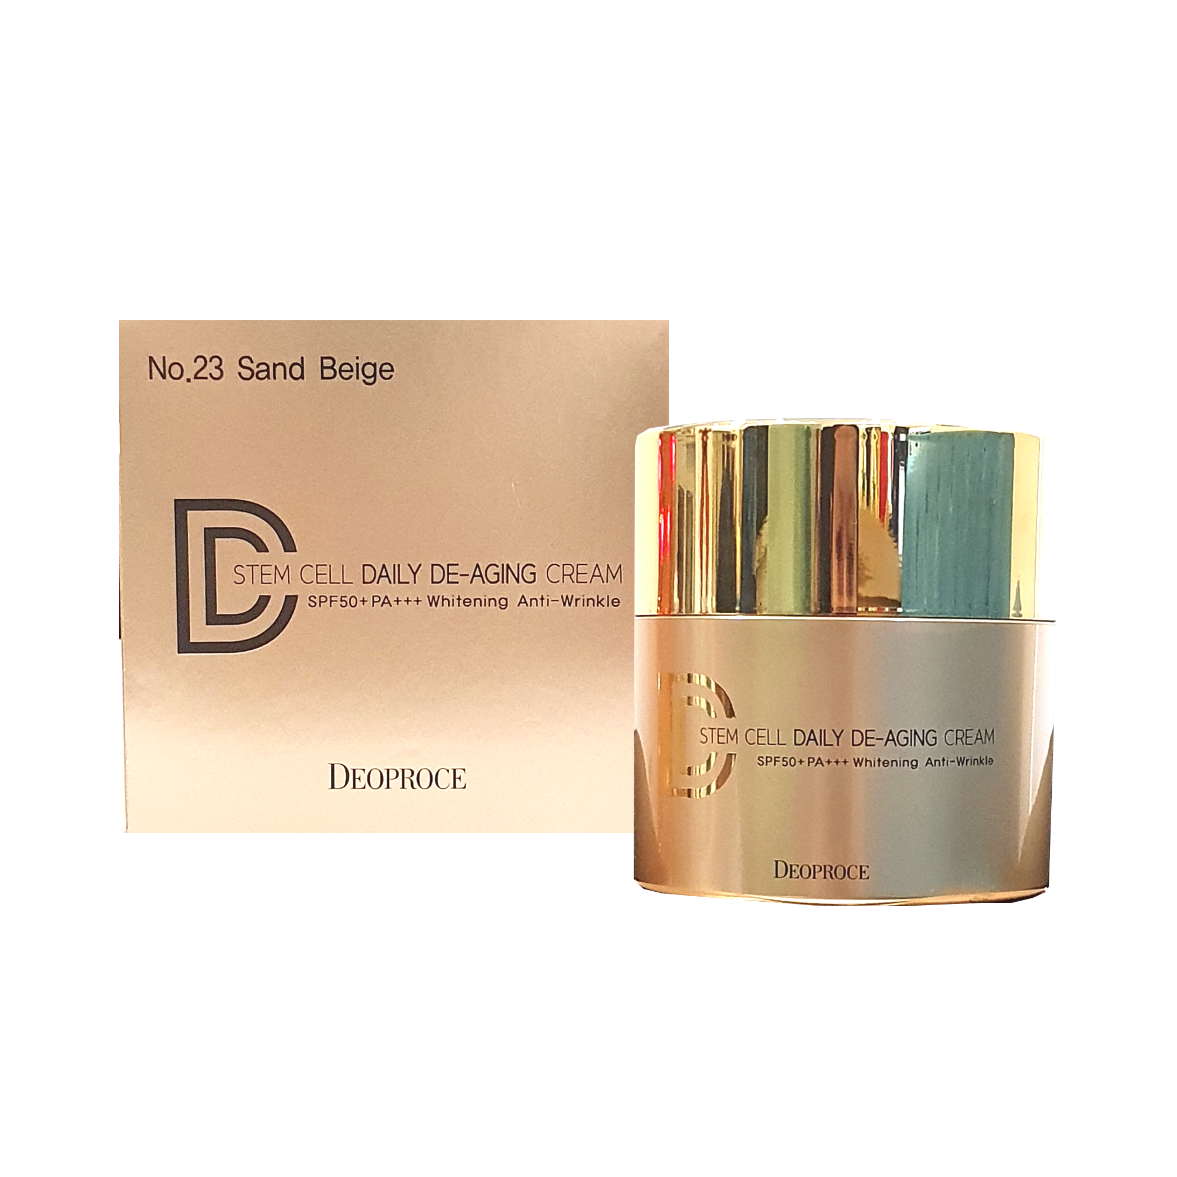 Kem nền DD Cream 3 trong 1 DEOPROCE Stem Cell Daily De-Aging DD Cream